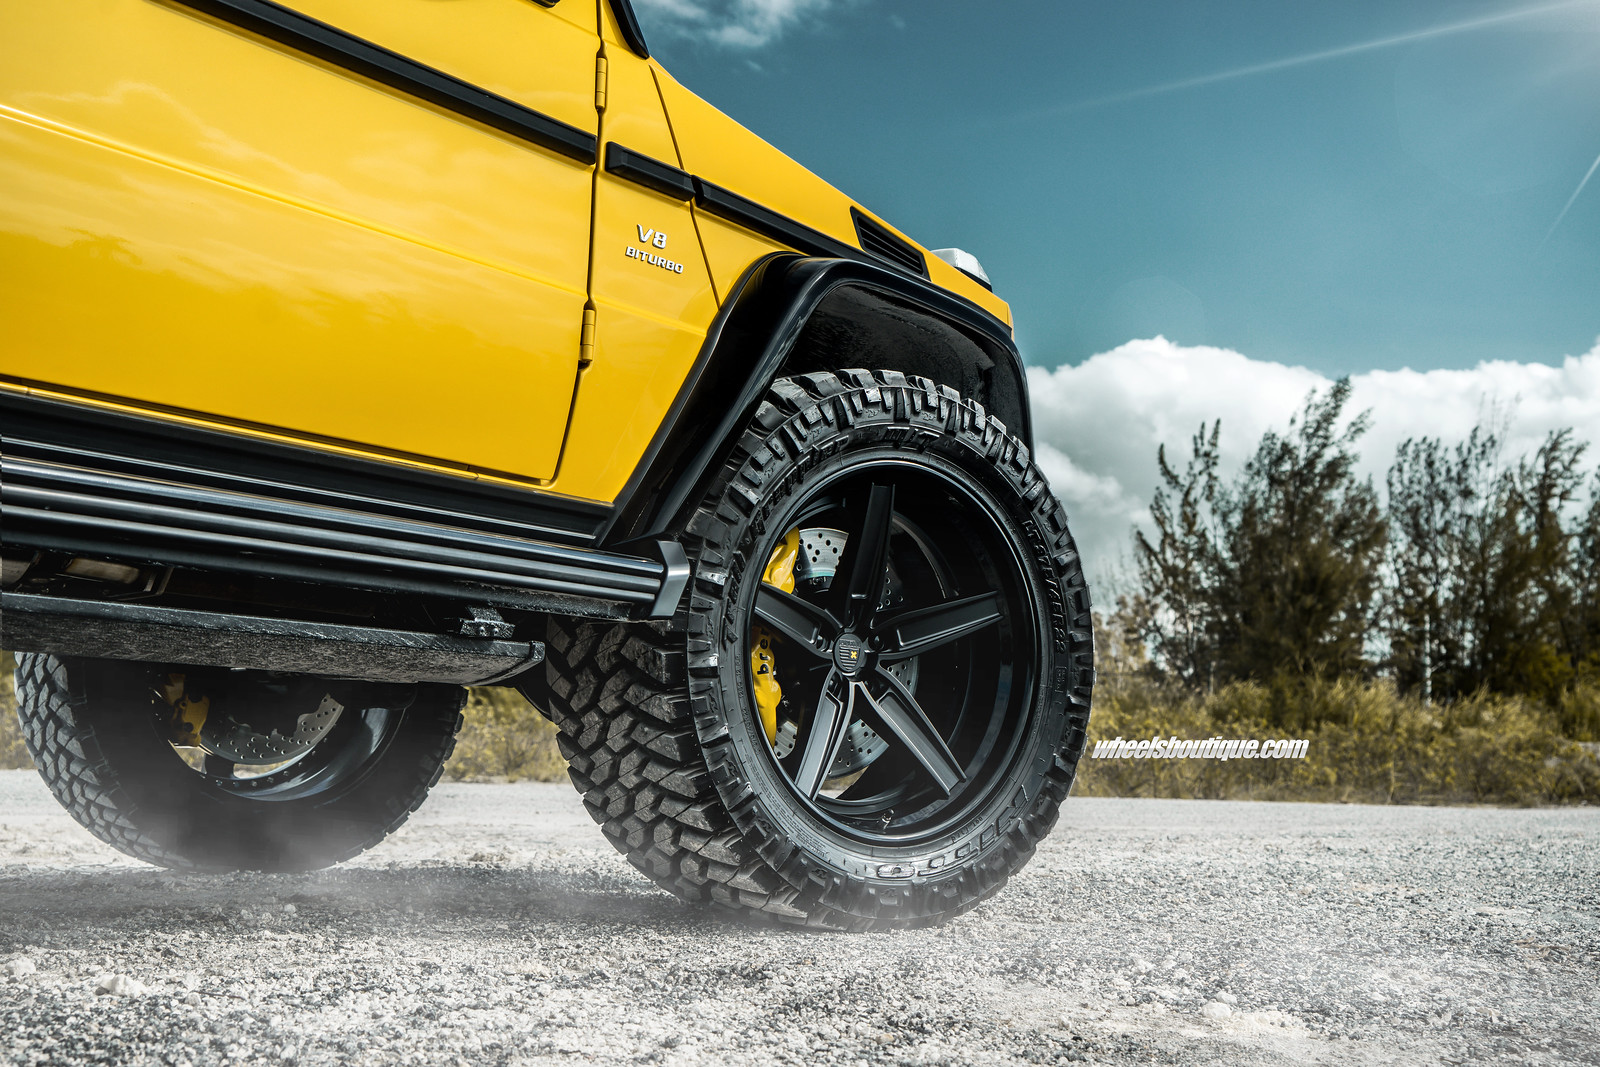 Fully Loaded Lifted Schoolbus - Mercedes G63 AMG With The